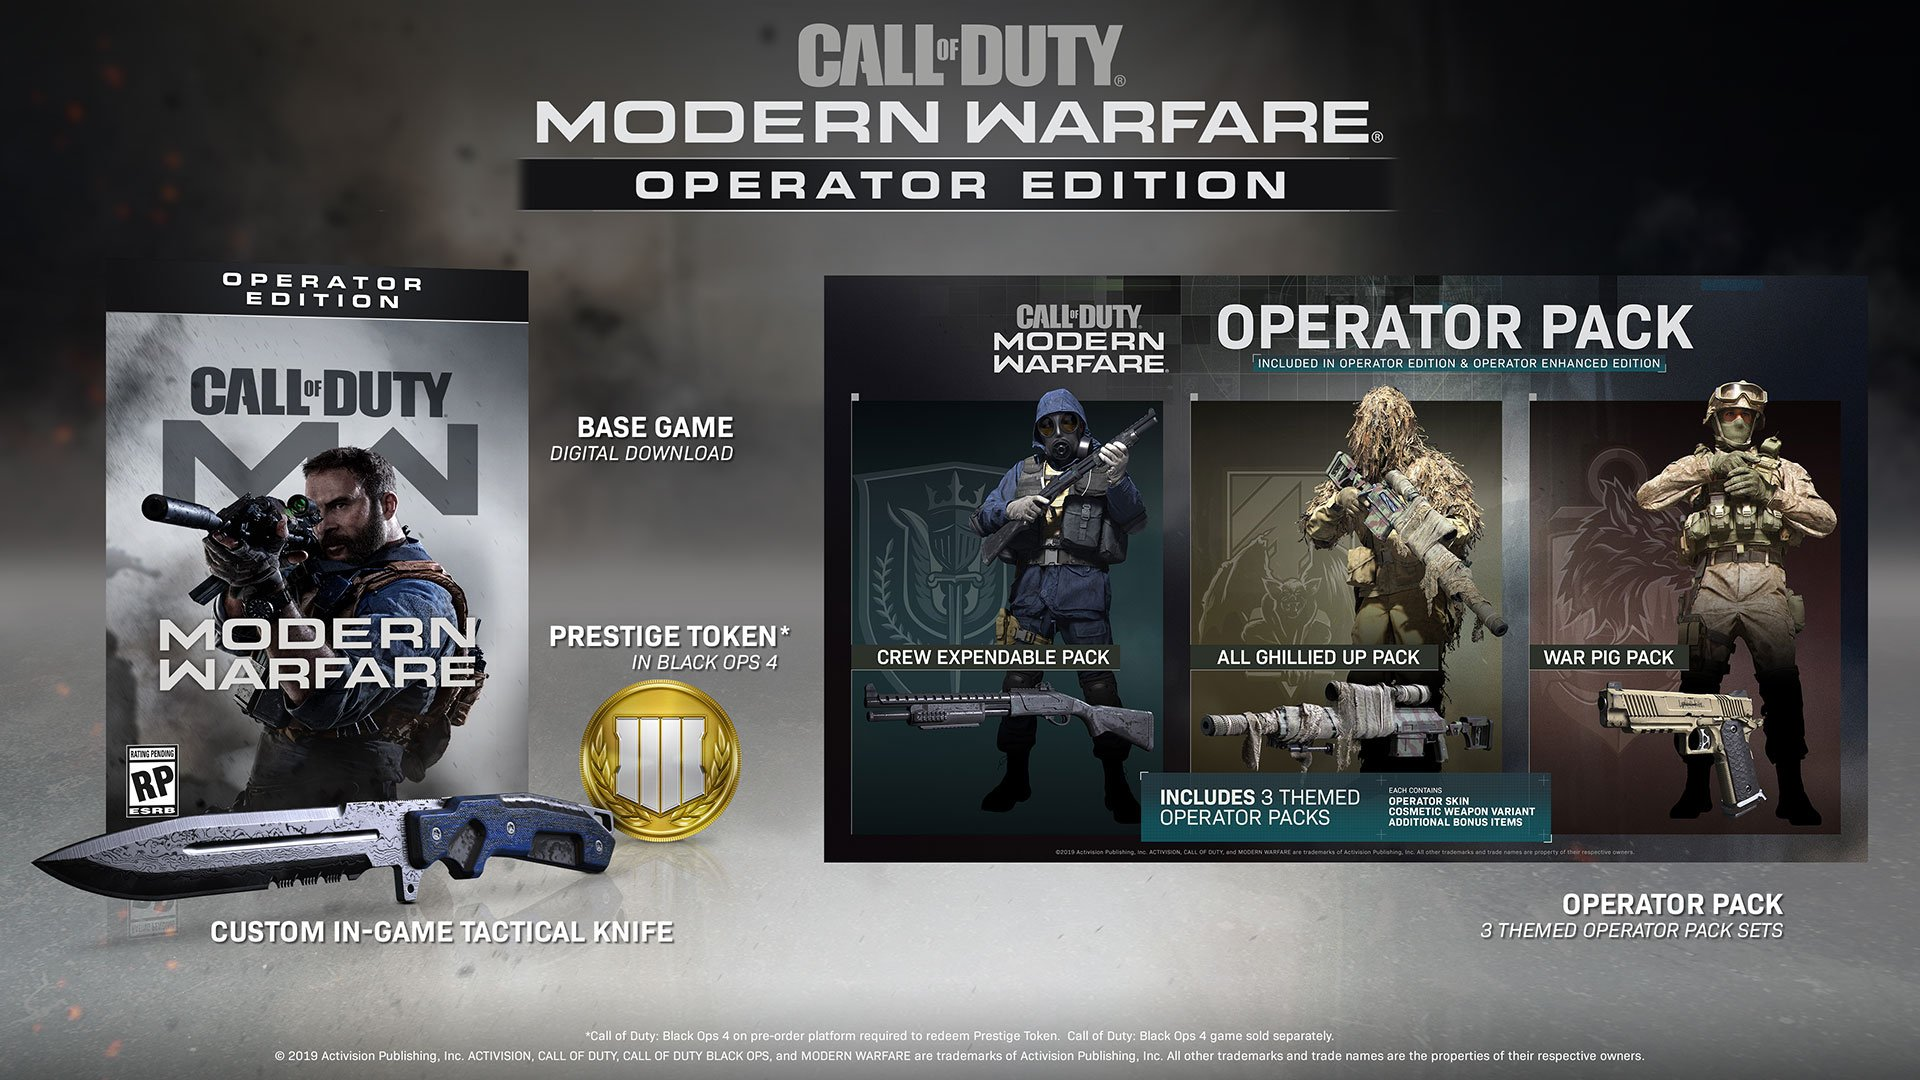 Pre-Order Call of Duty: Modern Warfare and You Get a Captain